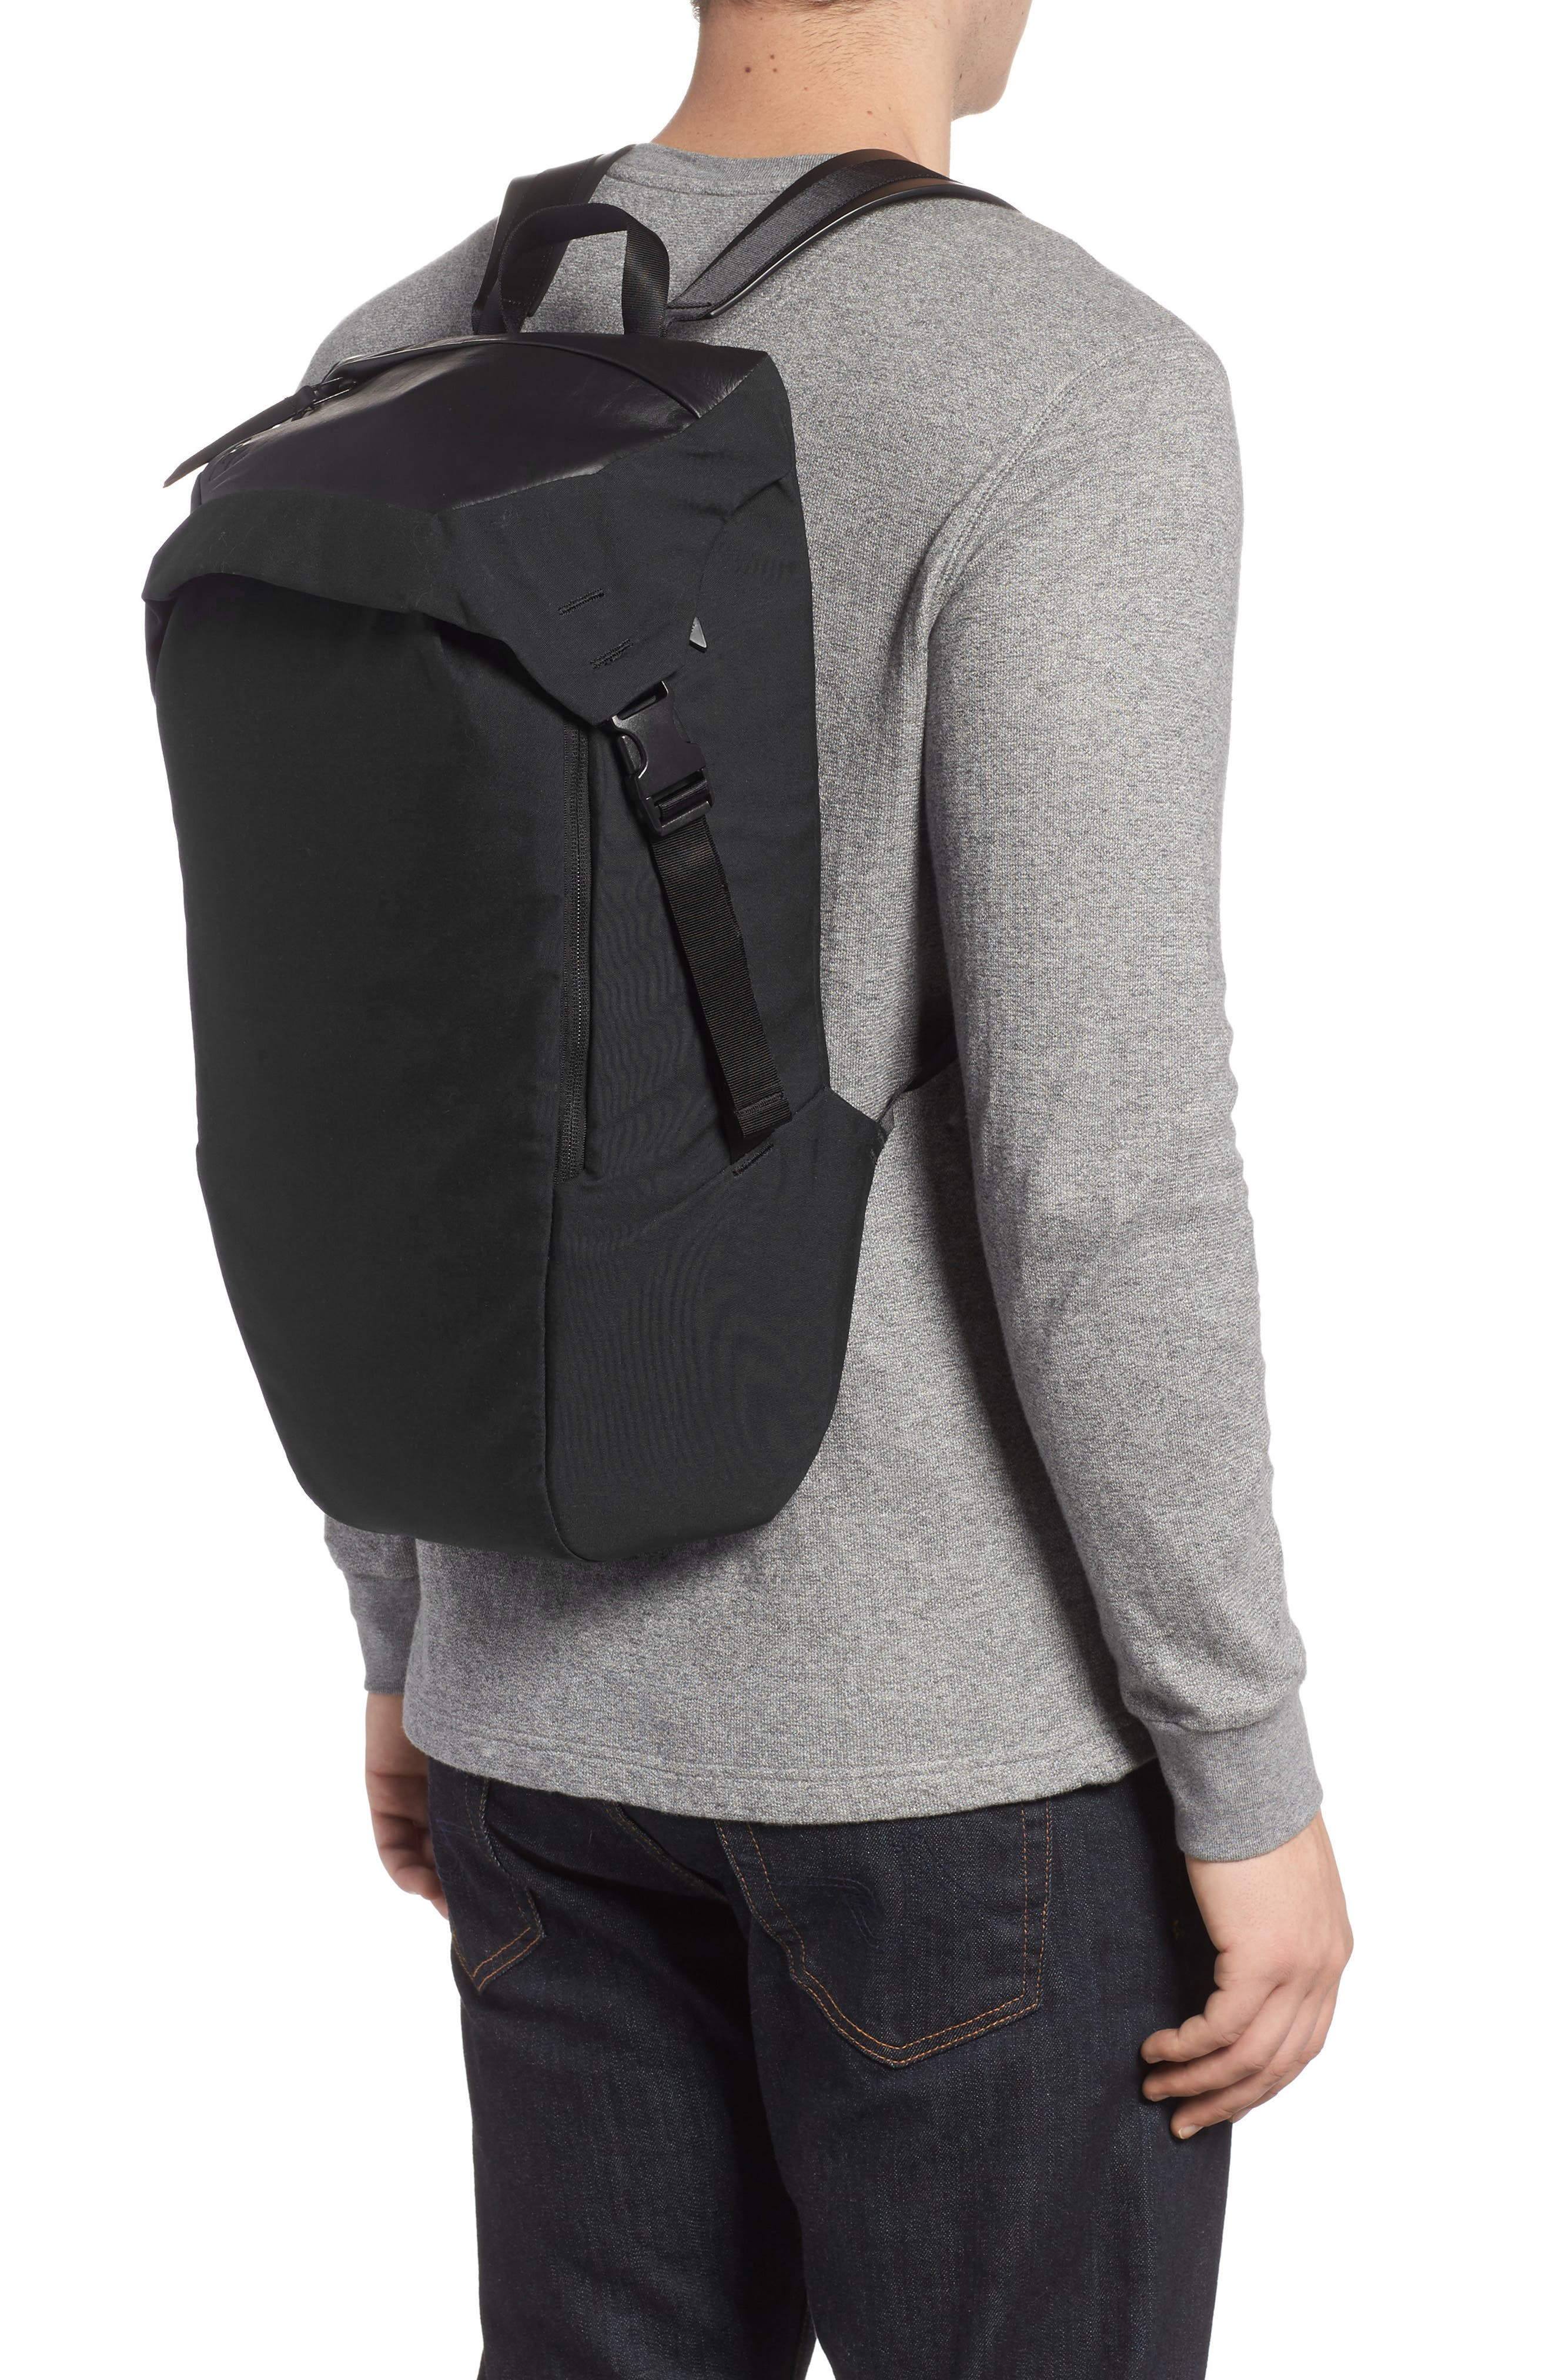 Quick Pack Lux Backpack,                             Alternate thumbnail 2, color,                             Black